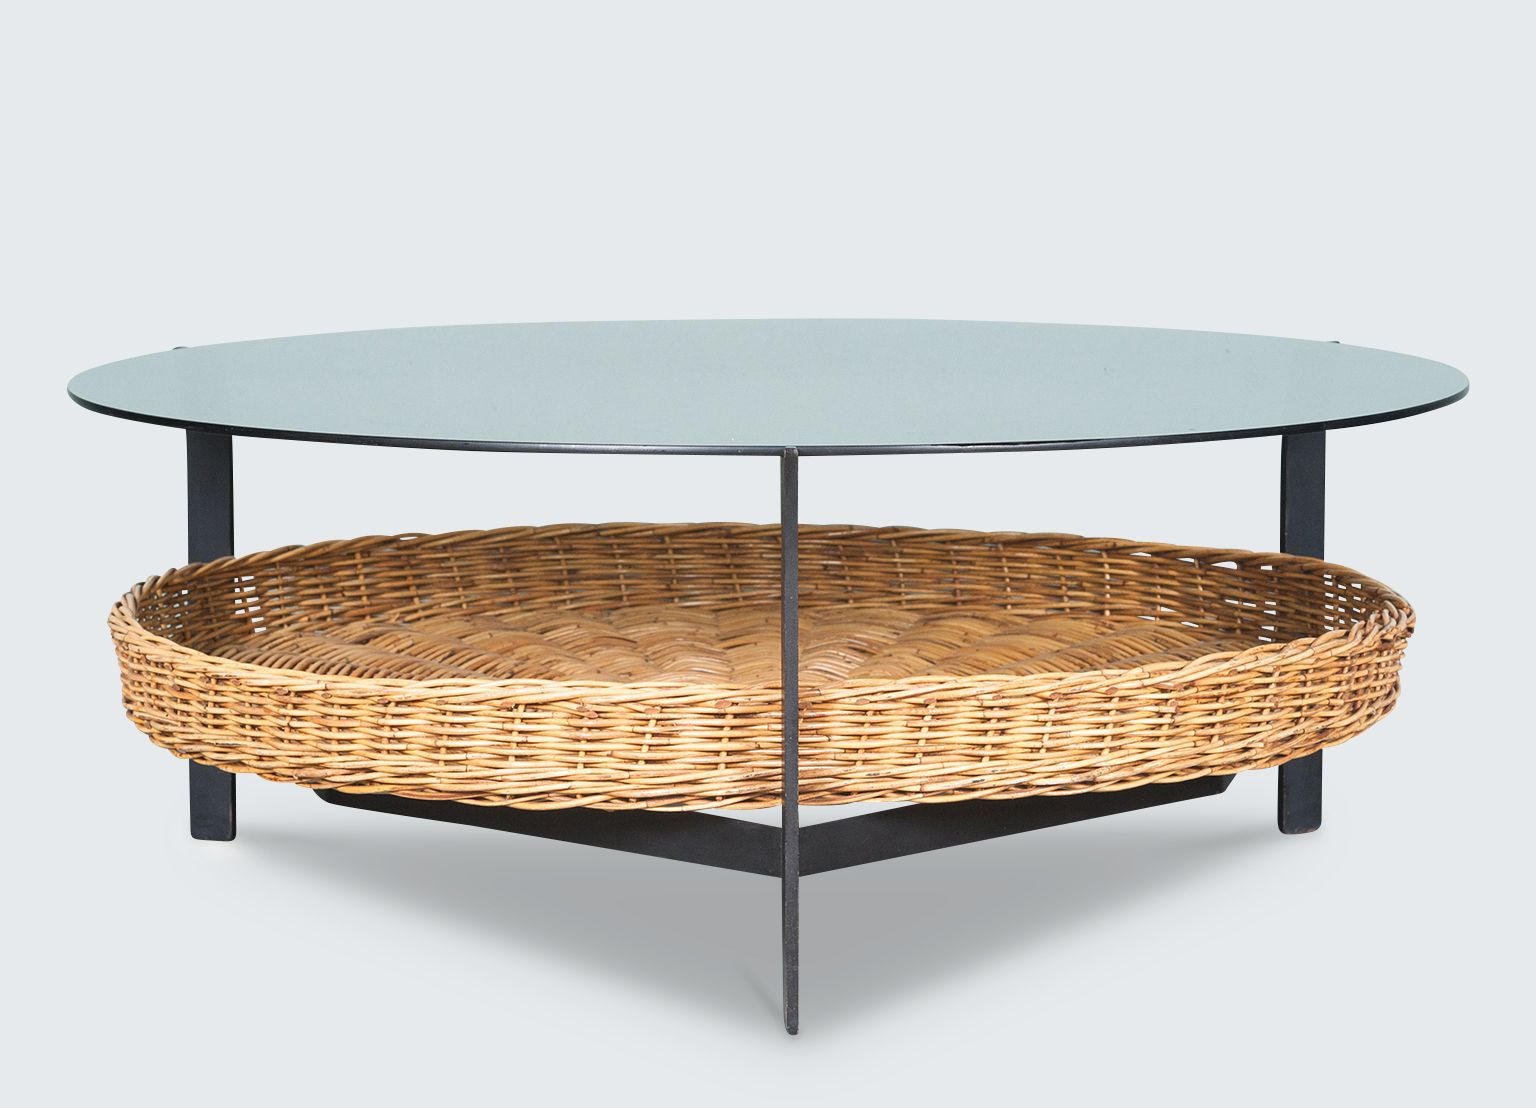 Dutch round coffee table with glass top and rattan basket